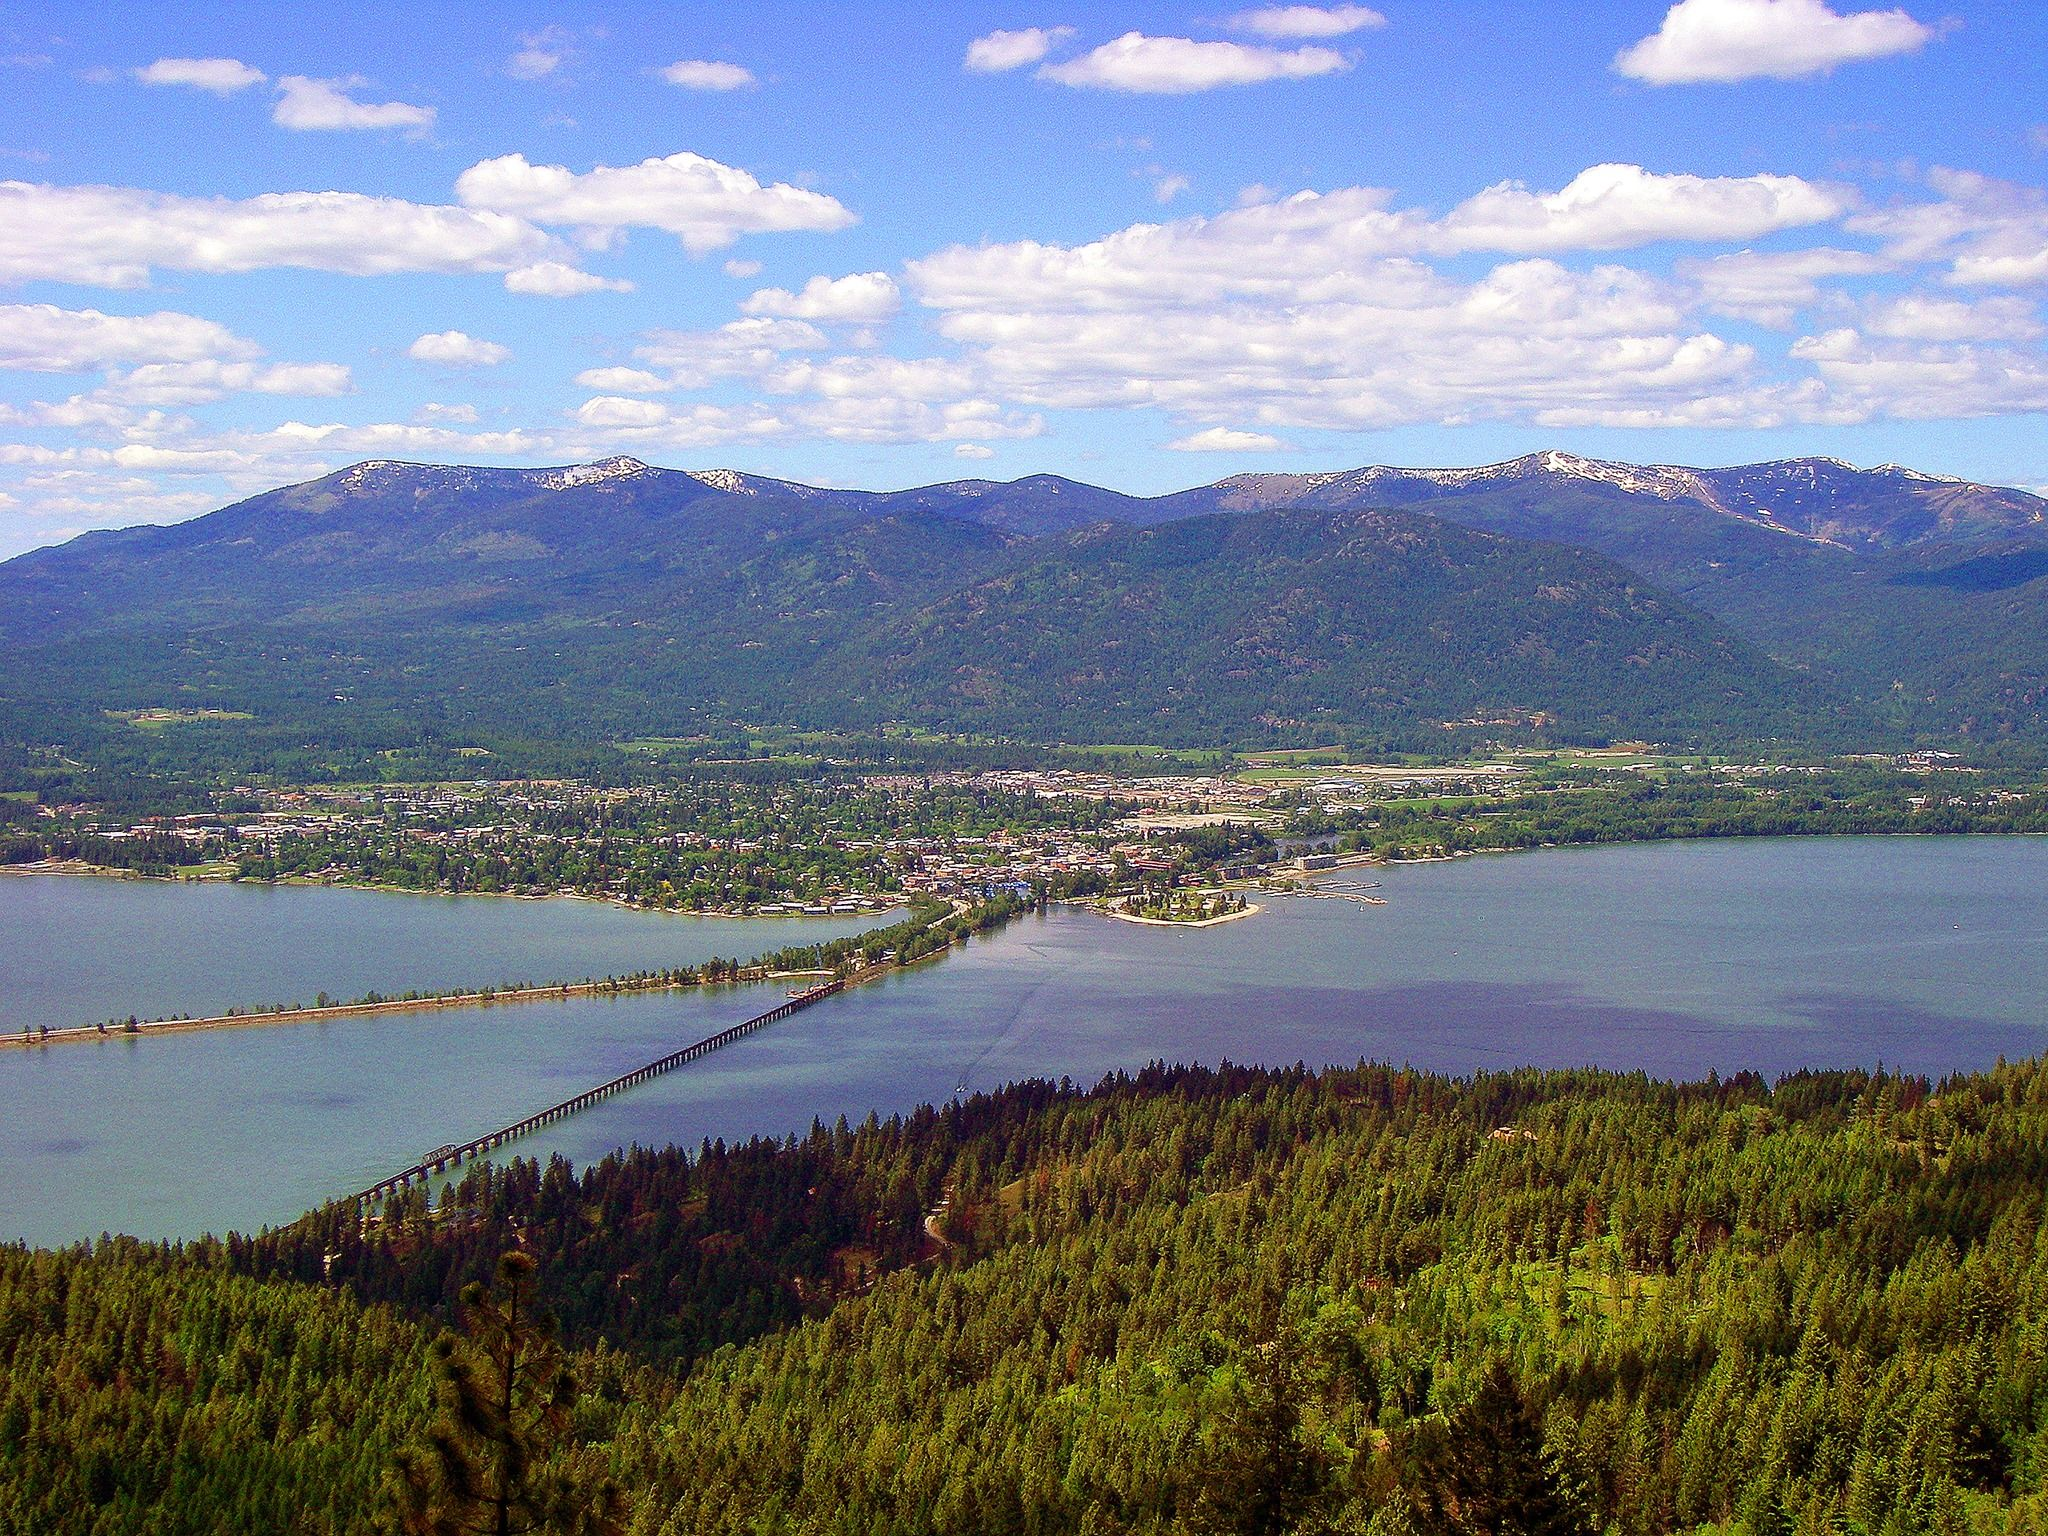 """<p>The number one reason we're bee-lining to Lake Pend Oreille<span class=""""redactor-invisible-space"""" data-verified=""""redactor"""" data-redactor-tag=""""span"""" data-redactor-class=""""redactor-invisible-space"""">?</span>Well, besides the spectacular views of Montana's CabinetMountains and theSelkirk Mountain Range<span class=""""redactor-invisible-space"""" data-verified=""""redactor"""" data-redactor-tag=""""span"""" data-redactor-class=""""redactor-invisible-space""""></span>, the huckleberry lemonade is a major draw(vodka is a necessary addition if it's after 5 p.m.). <span class=""""redactor-invisible-space"""" data-verified=""""redactor"""" data-redactor-tag=""""span"""" data-redactor-class=""""redactor-invisible-space"""">After you're done meandering through the walkable downtown, dig into hearty grub at <a href=""""http://www.spudsonline.com/"""" target=""""_blank"""" data-tracking-id=""""recirc-text-link"""">Spuds Waterfront Grill</a>.Festivals abound here, and a few of our favorites include the <a href=""""http://www.festivalatsandpoint.com/"""" target=""""_blank"""" data-tracking-id=""""recirc-text-link"""">Festival at Sandpoint</a>,the <a href=""""http://longbridgeswim.org/"""" target=""""_blank"""" data-tracking-id=""""recirc-text-link"""">Long Bridge Swim</a> (where hundreds of swimmers competeannually), and the 25th annual <a href=""""http://www.schweitzer.com/event/fall-fest-2017/"""" target=""""_blank"""" data-tracking-id=""""recirc-text-link"""">Fall Fest</a>. If you're trying to figure out where to stay, the<a href=""""http://www.westernpleasureranch.com/"""" target=""""_blank"""" data-tracking-id=""""recirc-text-link"""">Western Pleasure Guest Ranch</a>won't disappoint.</span><br></p><p><em data-redactor-tag=""""em"""" data-verified=""""redactor"""">For more information, visit<a href=""""http://visitsandpoint.com/"""">visitsandpoint.com</a>.</em></p>"""